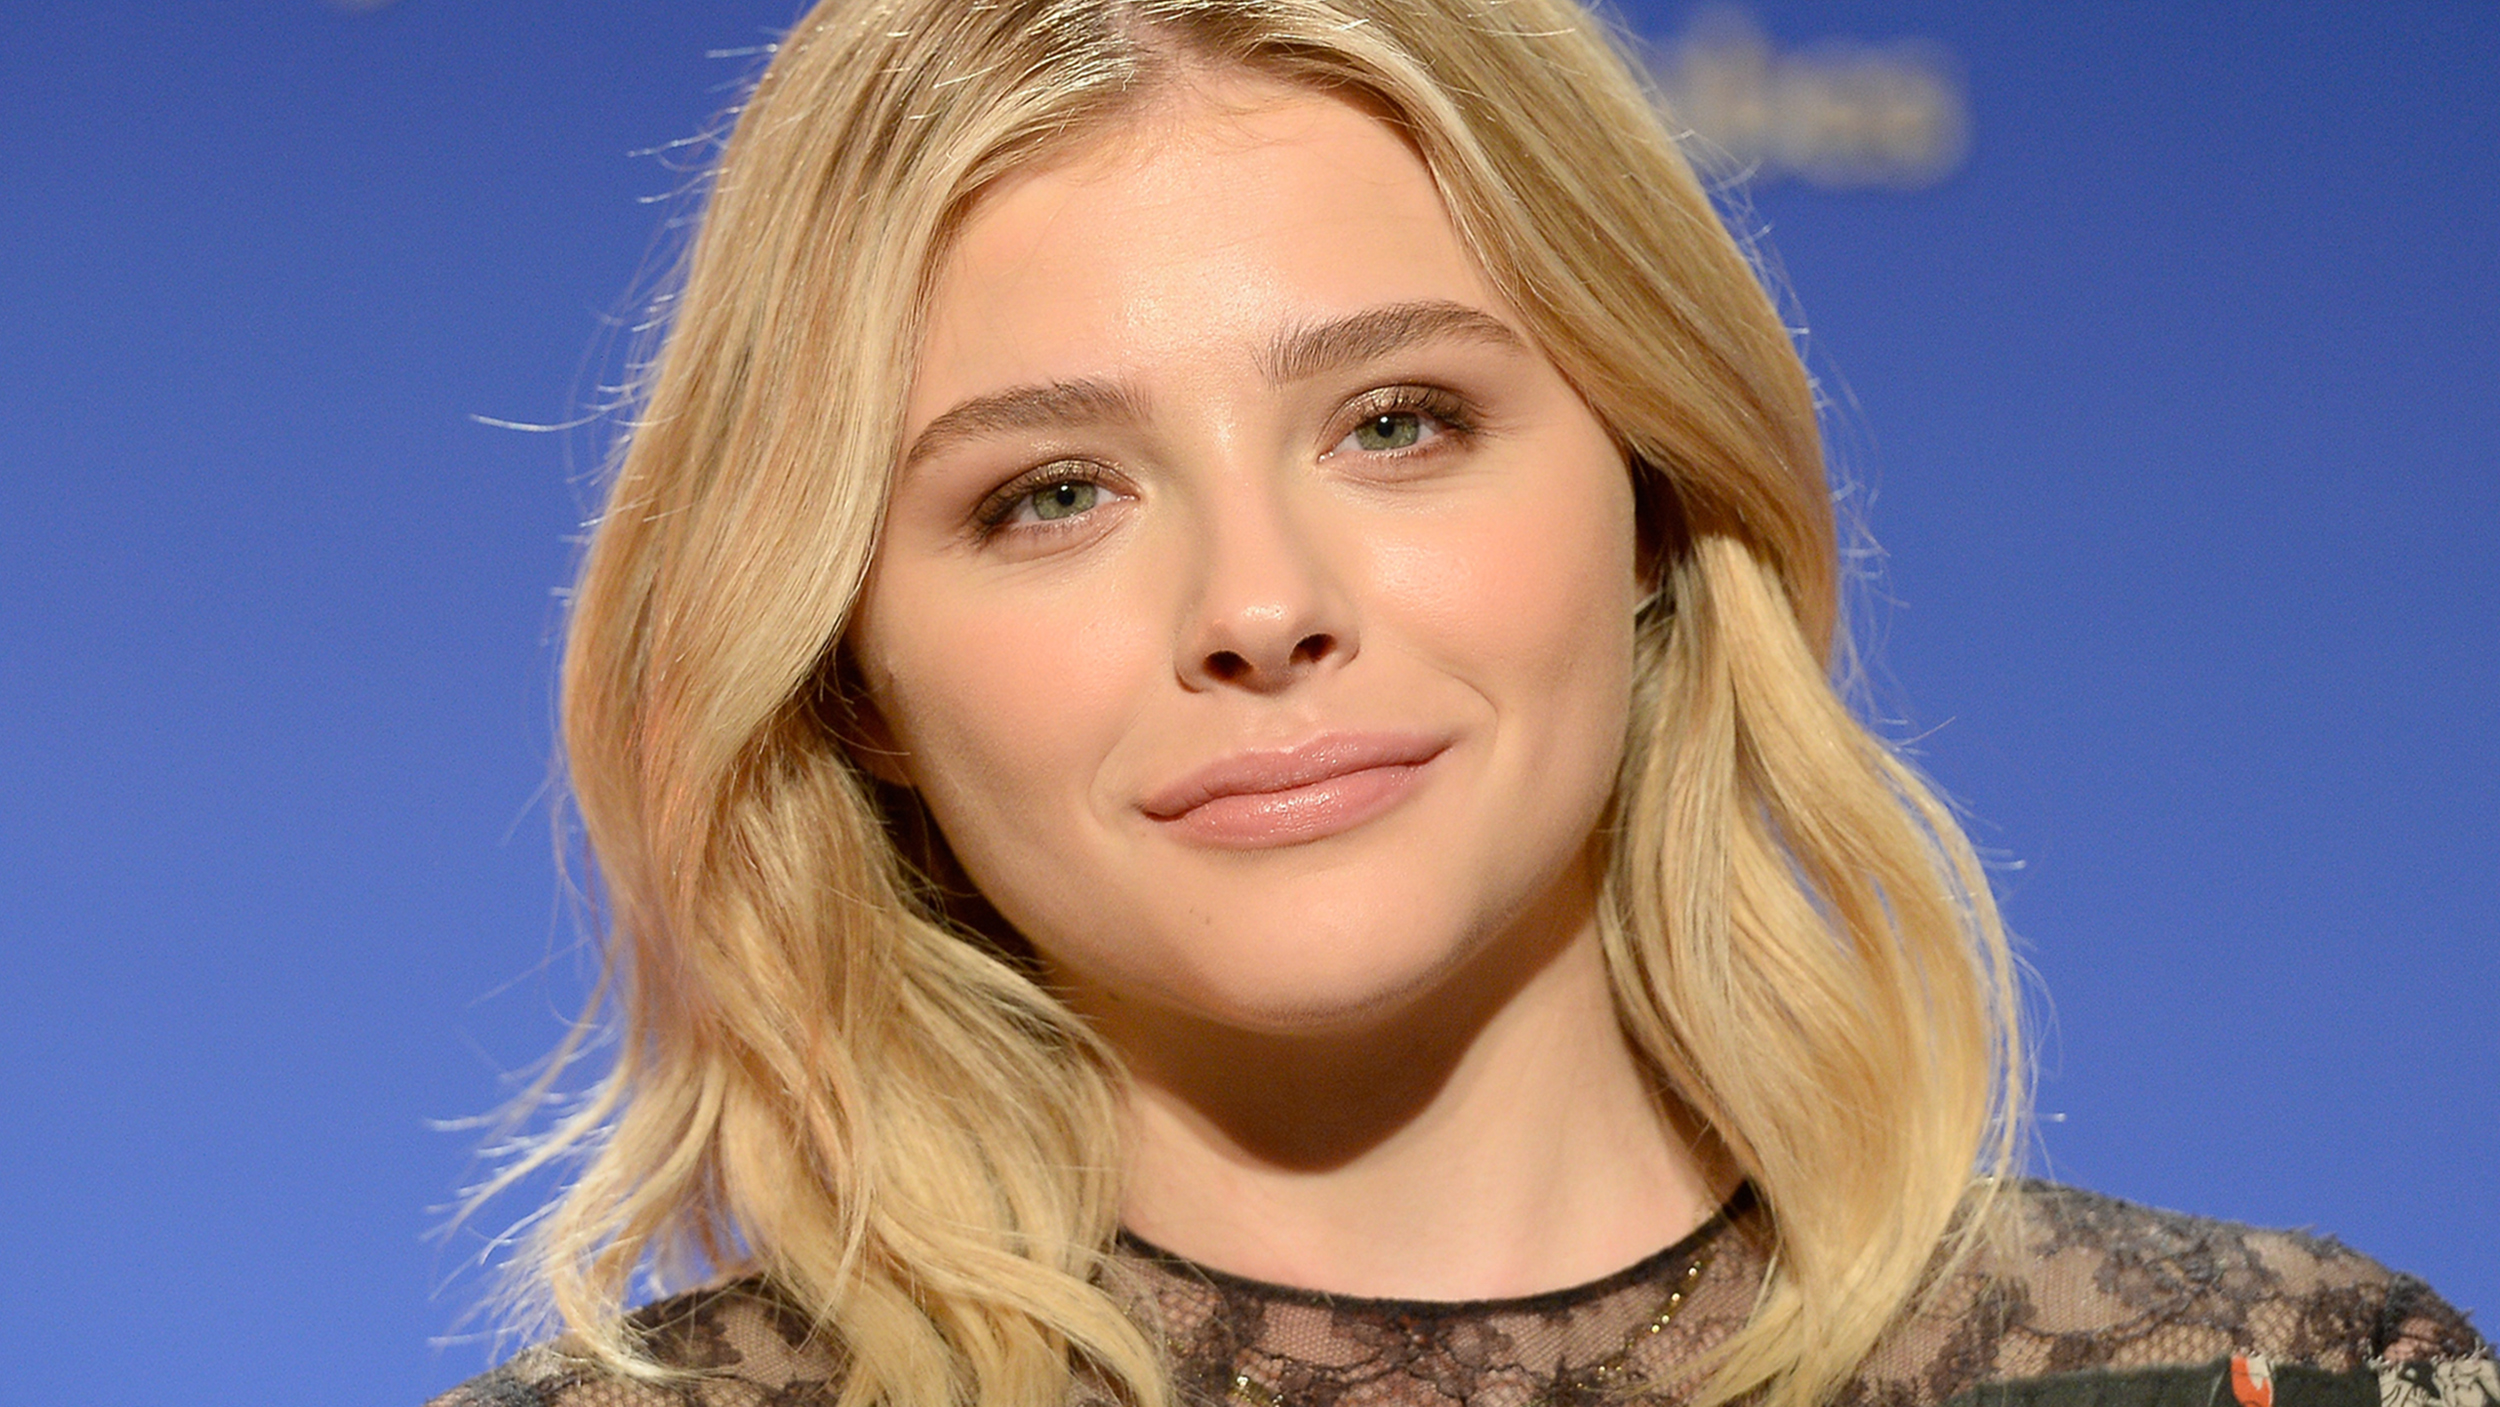 Chloe Grace Moretz Gets Bangs And An Edgy New Hairstyle